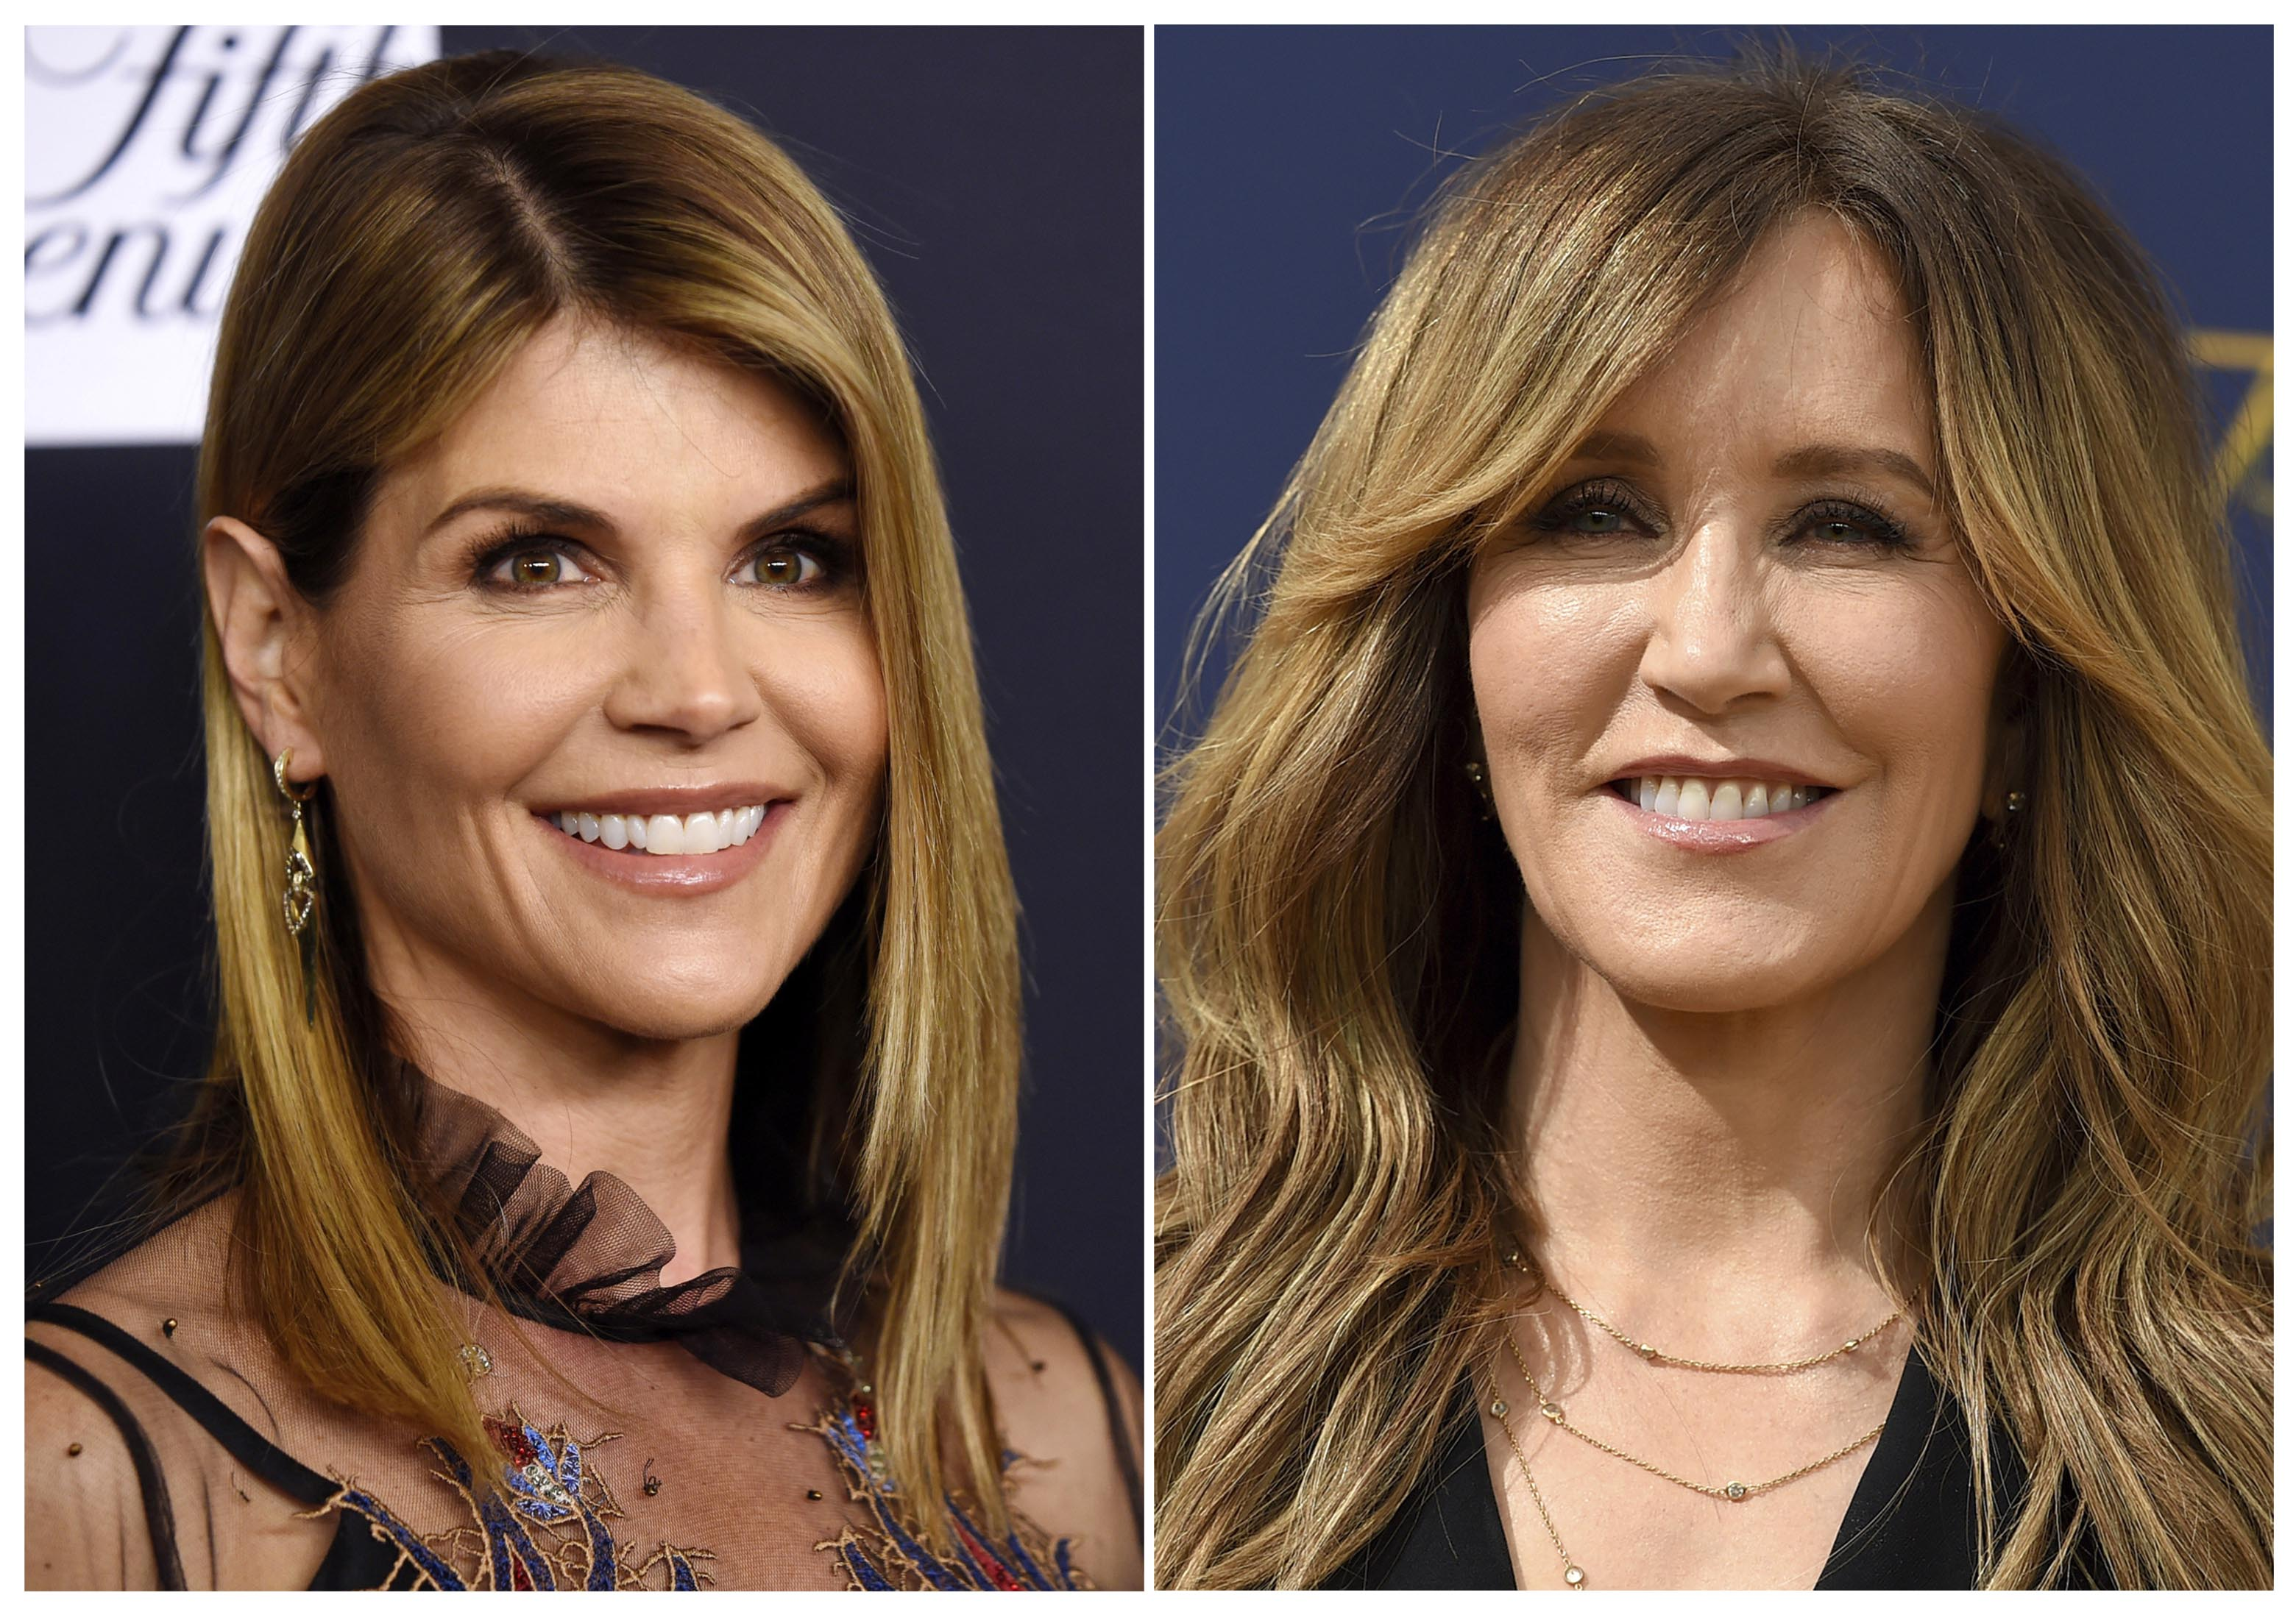 This combination photo shows actress Lori Loughlin at the Women's Cancer Research Fund's An Unforgettable Evening event in Beverly Hills, Calif., on Feb. 27, 2018, left, and actress Felicity Huffman at the 70th Primetime Emmy Awards in Los Angeles on  Sept. 17, 2018. Photo: AP